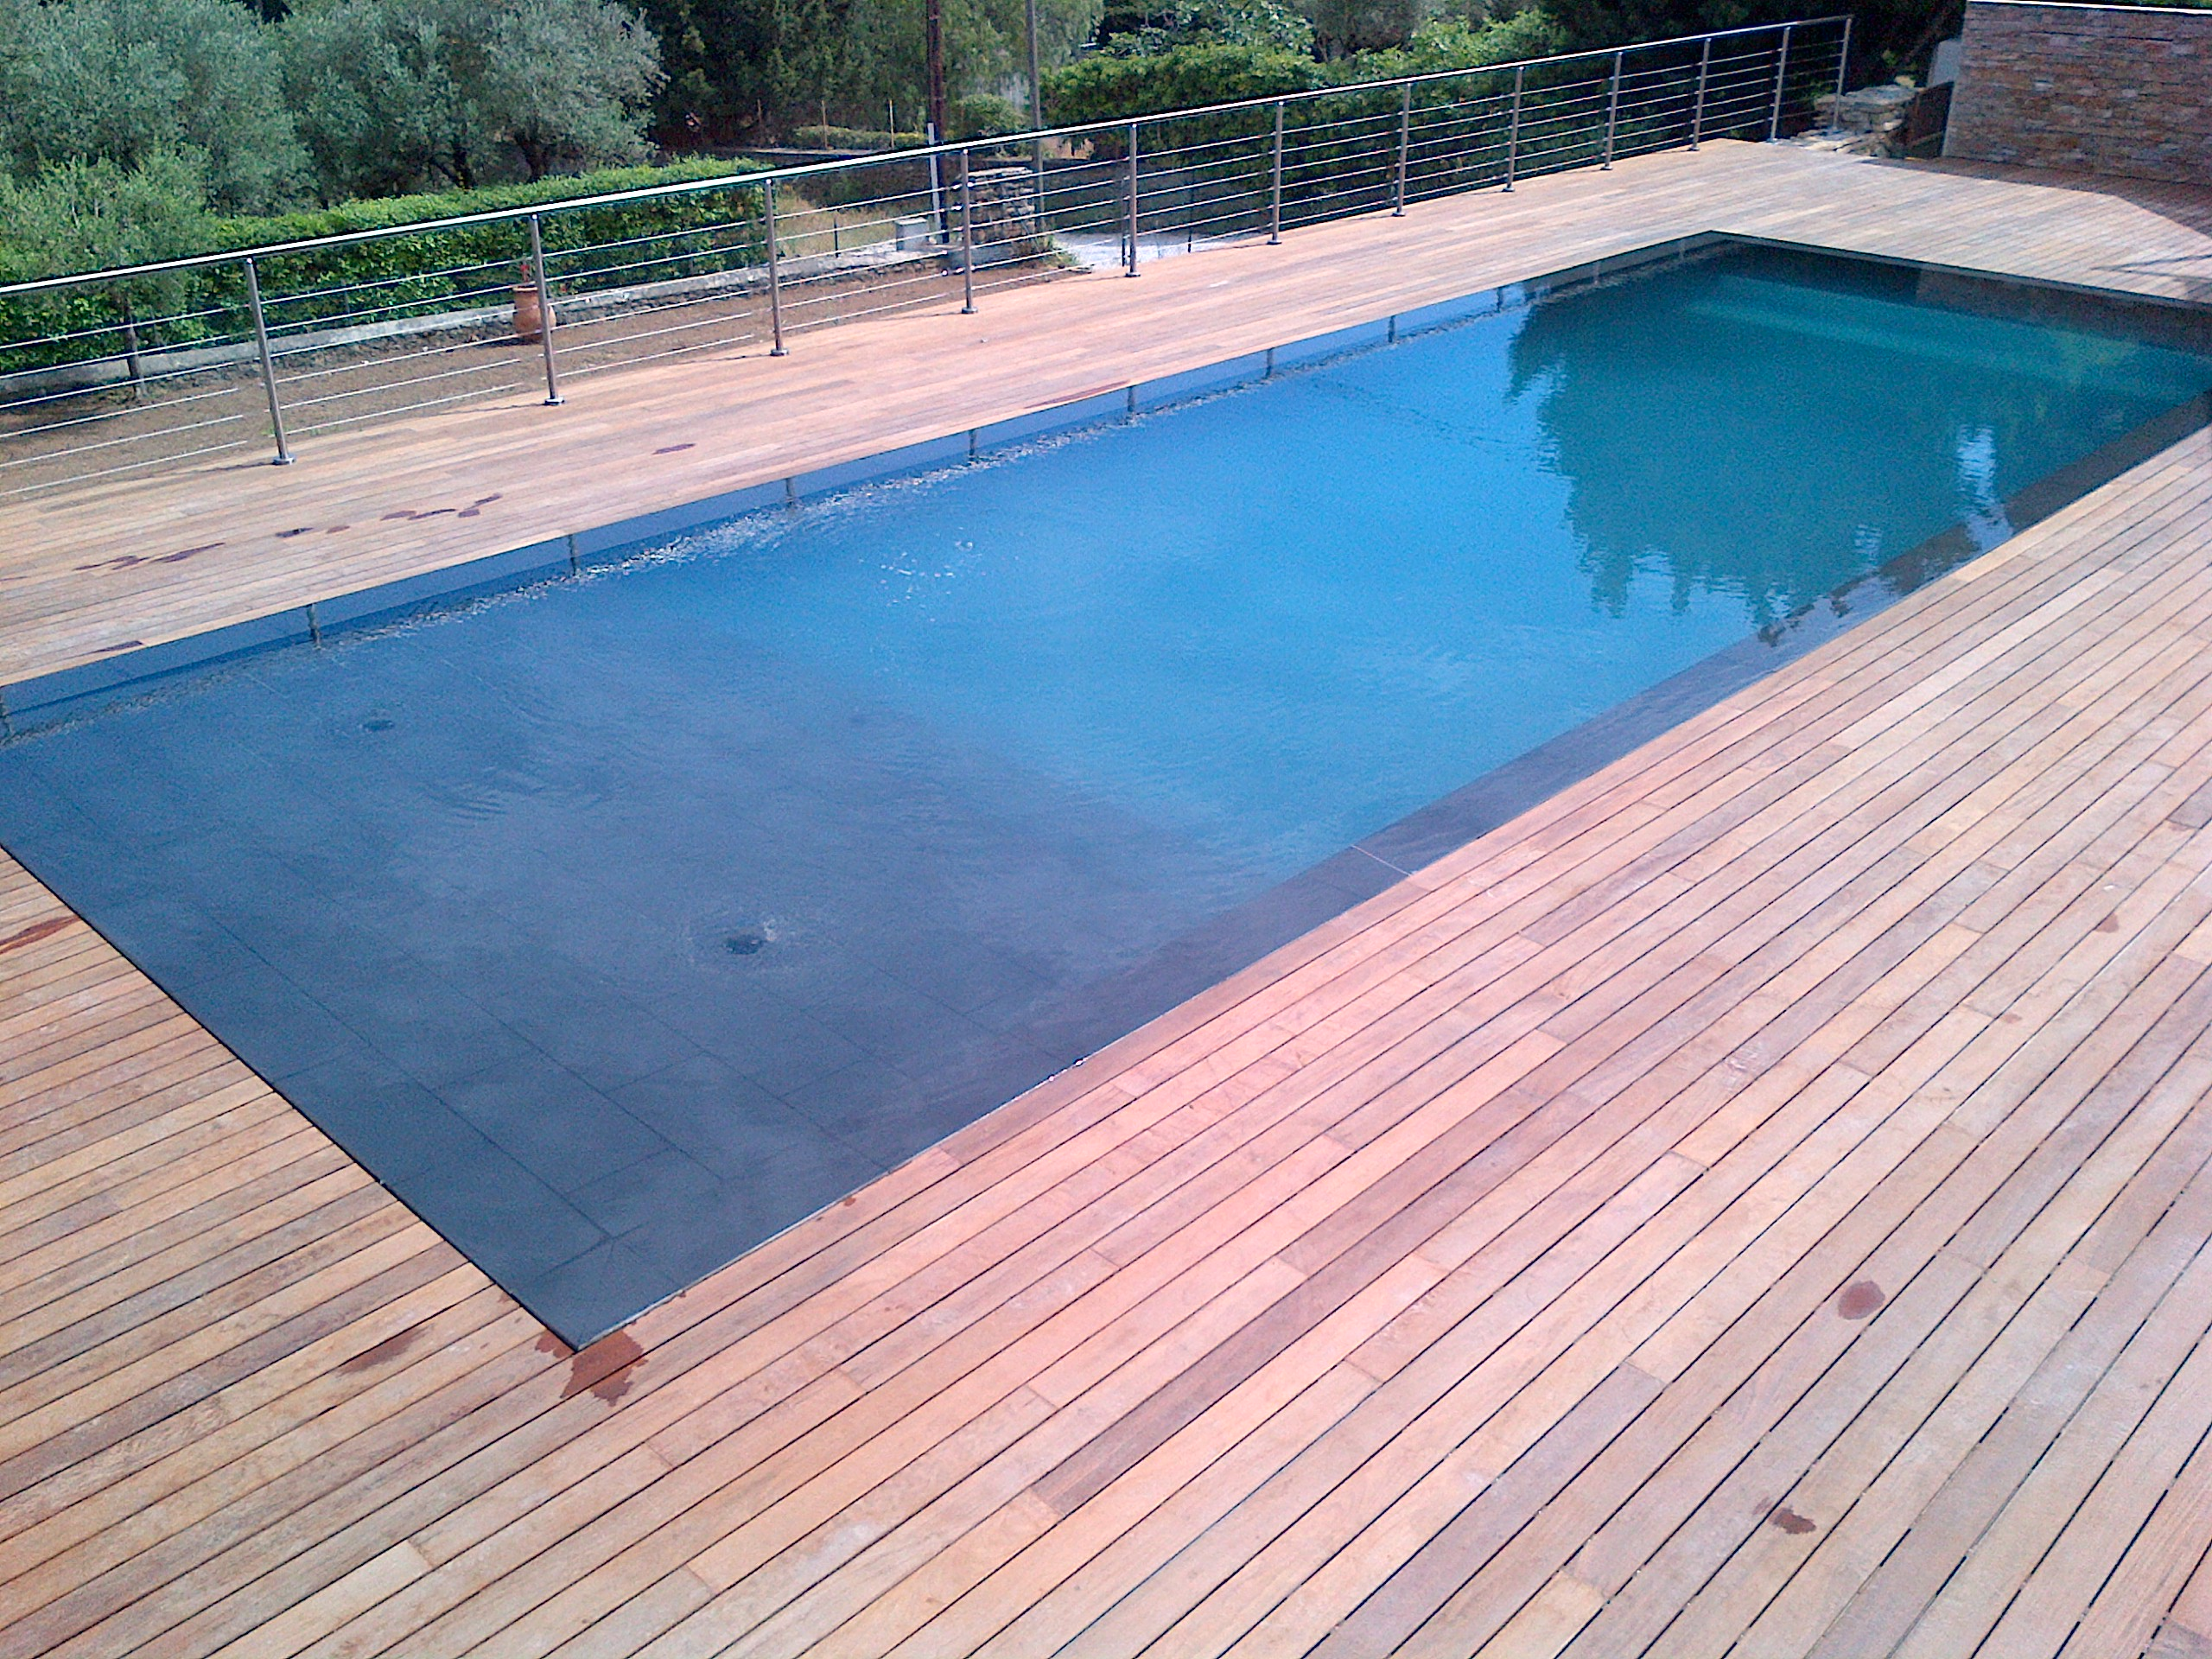 La piscine aquaset brignoles var draguignan fr jus for Construction piscine traditionnelle